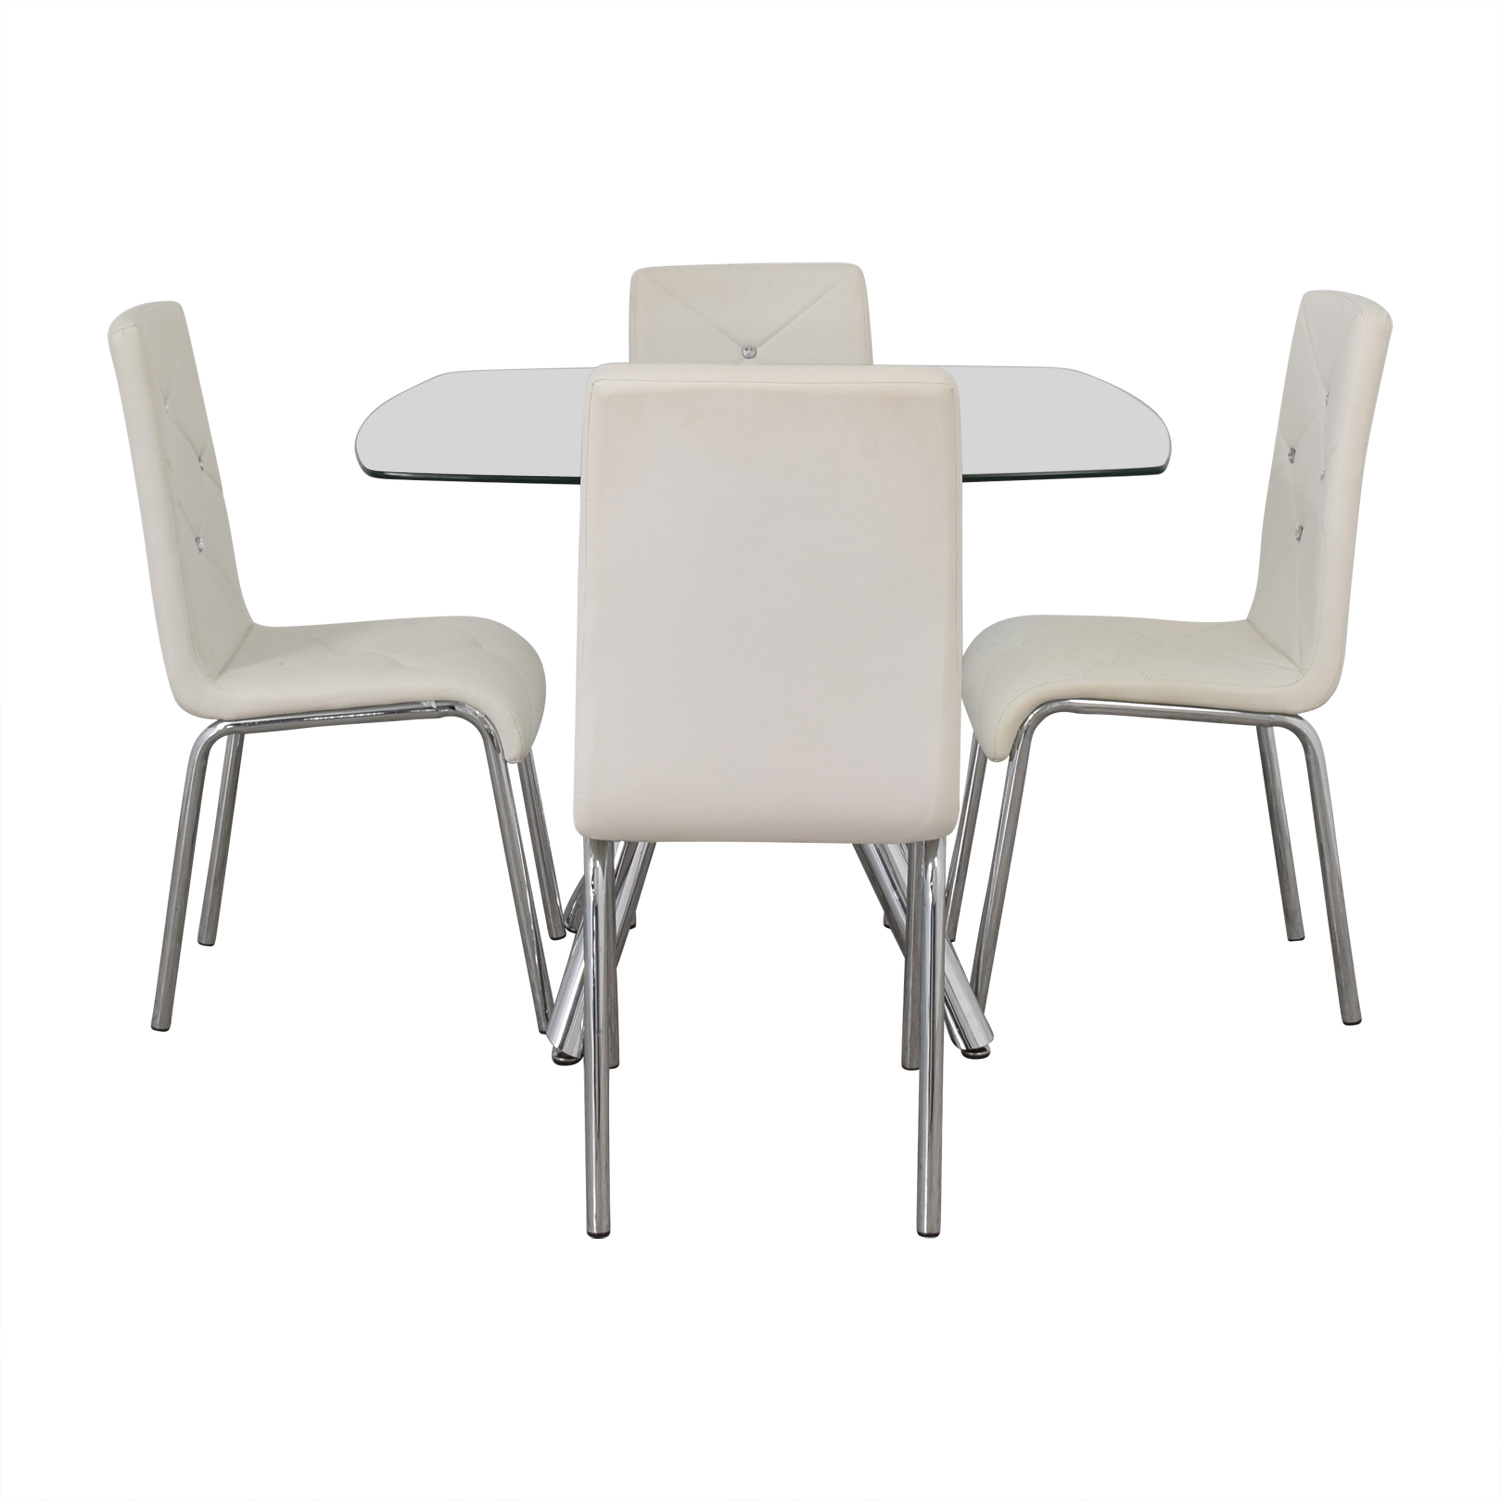 white tufted chairs ergonomic chair headrest 60 off glass and chrome dining set with tables discount